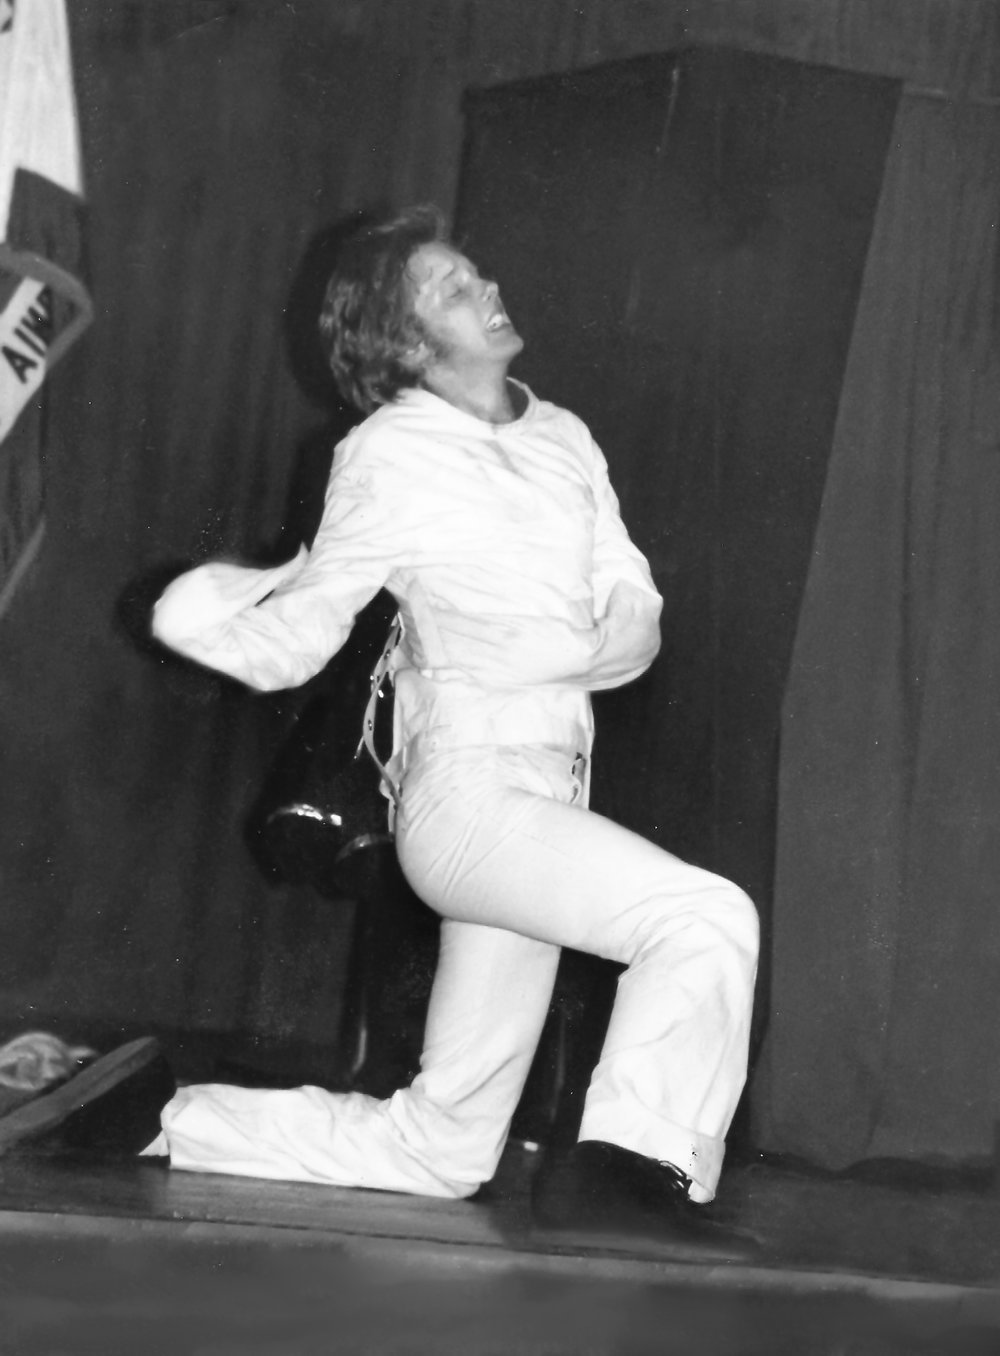 Michael Griffin - America's Escape Hero is shown escaping from the JT Posey straitjacket ca.1979 the year he became the first ever to successfully escape from it.